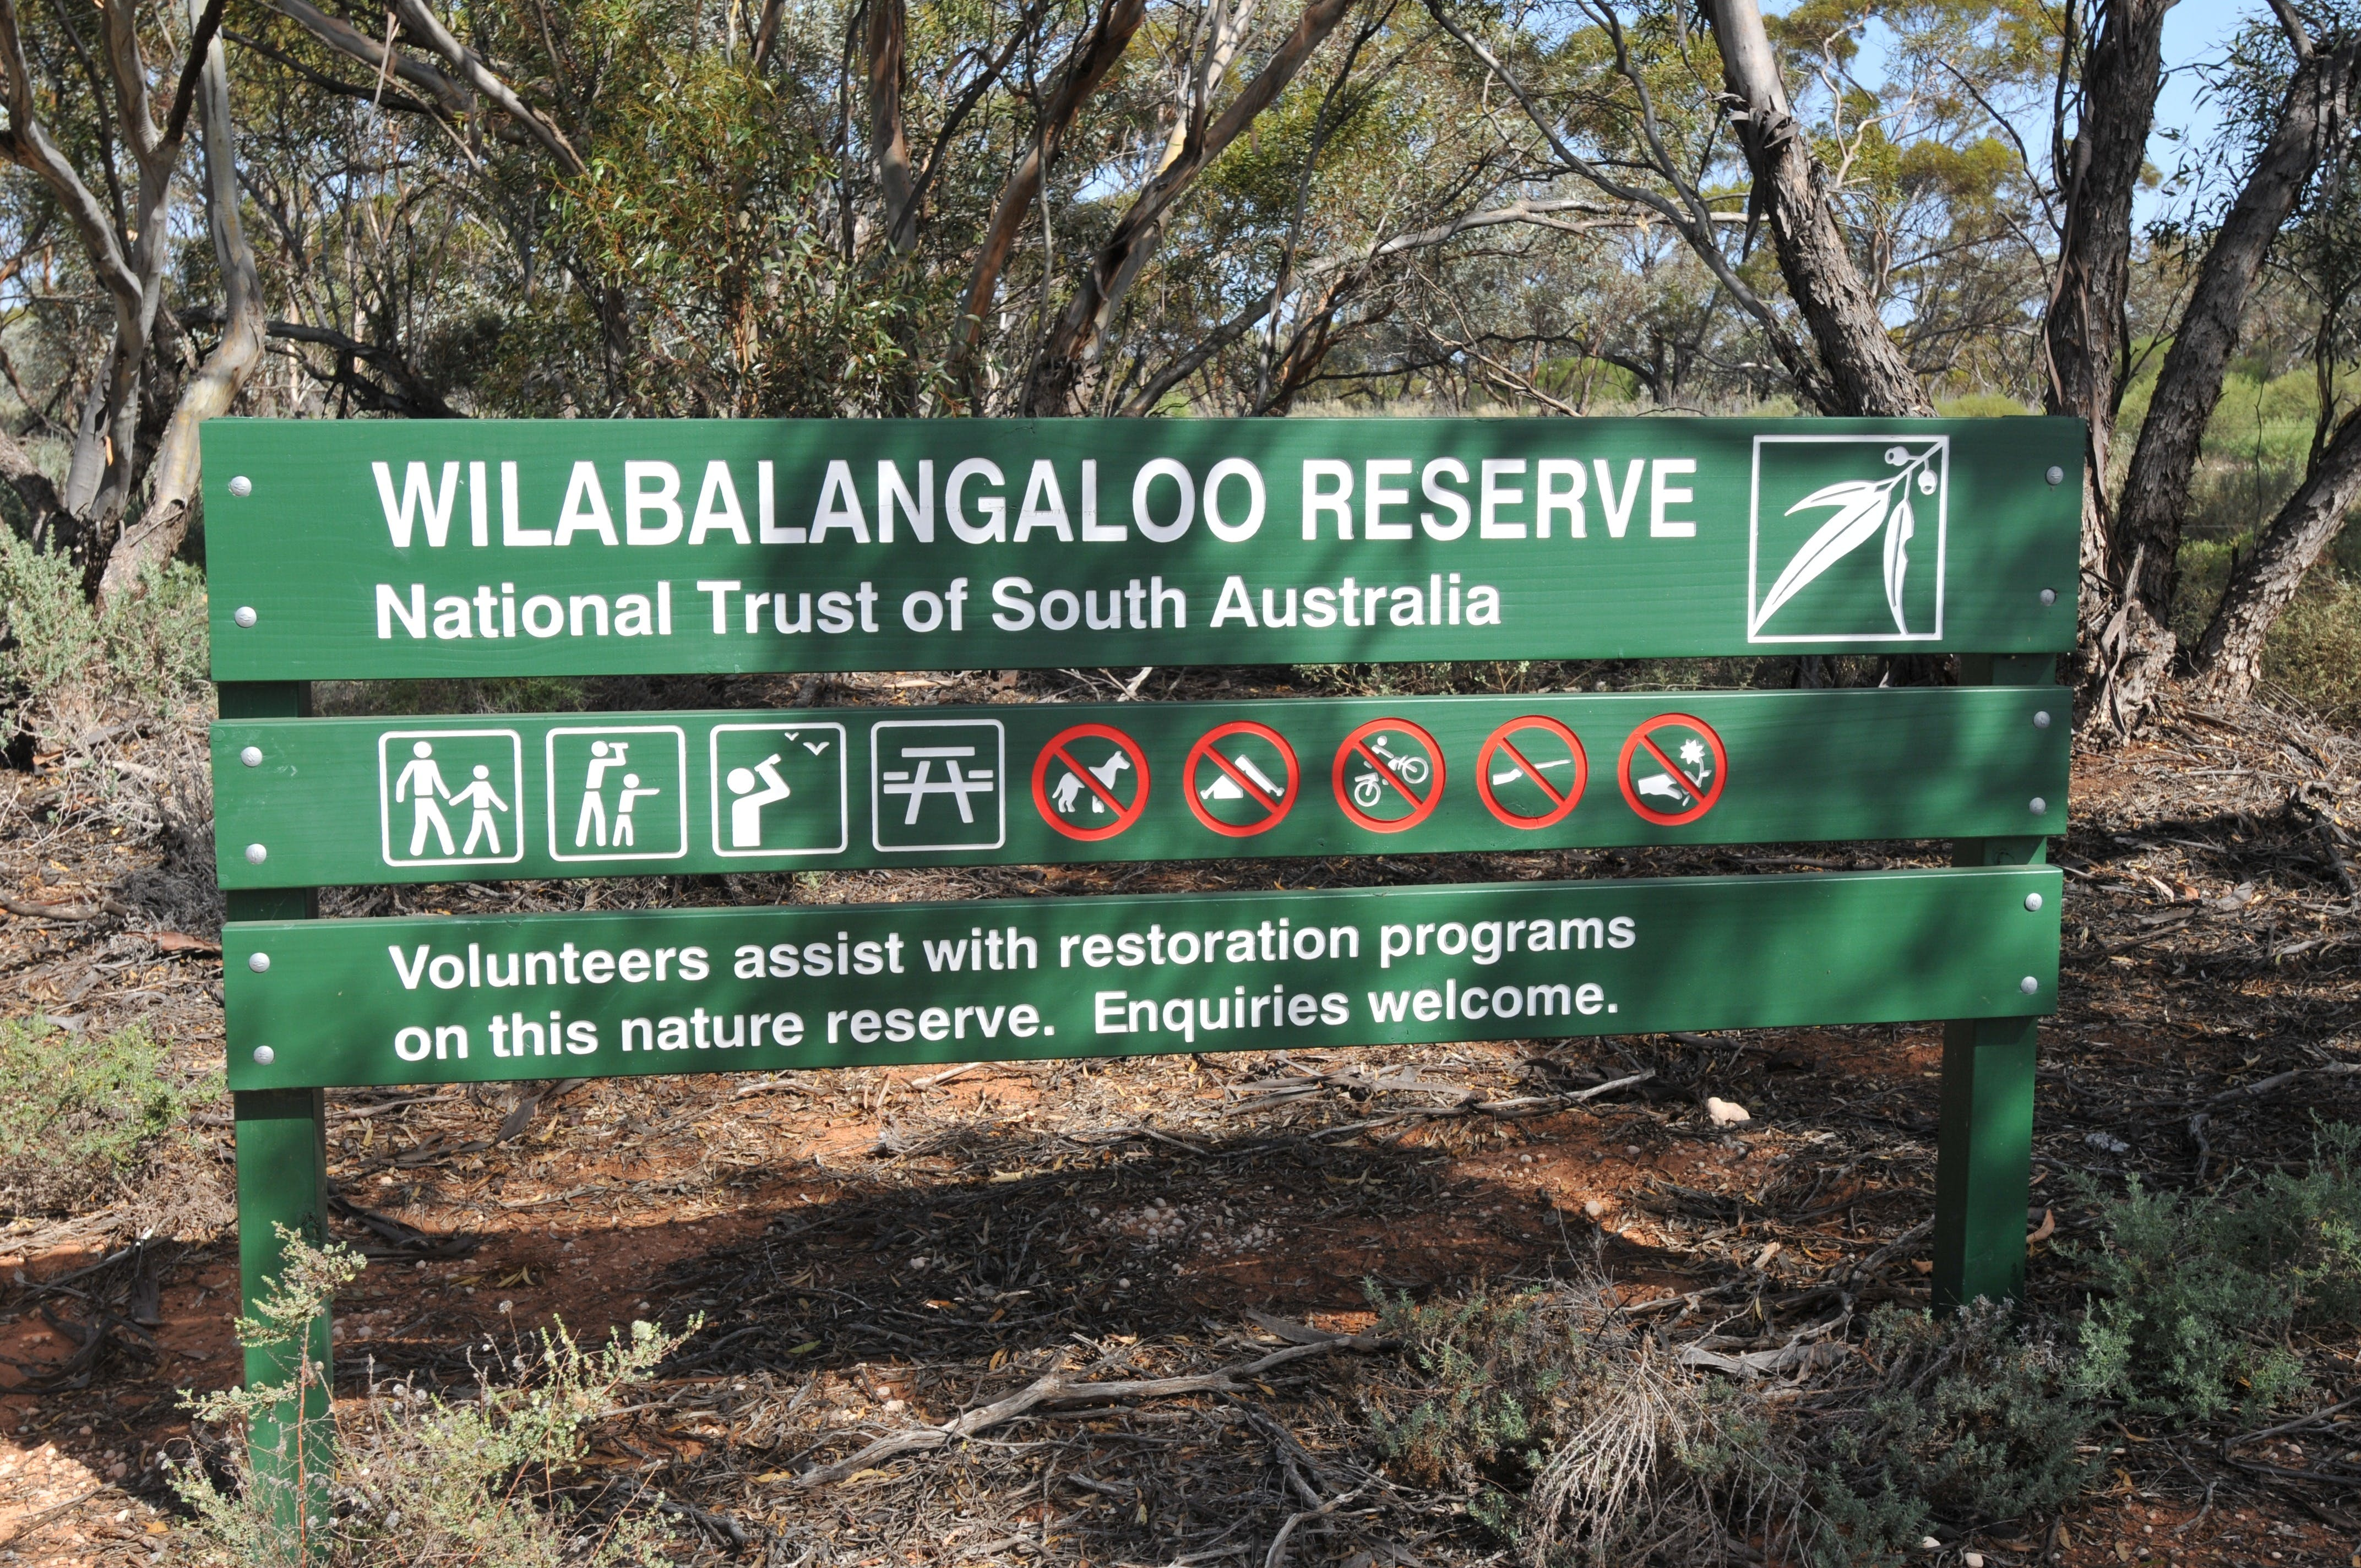 Wilabalangaloo Reserve - Accommodation Cairns